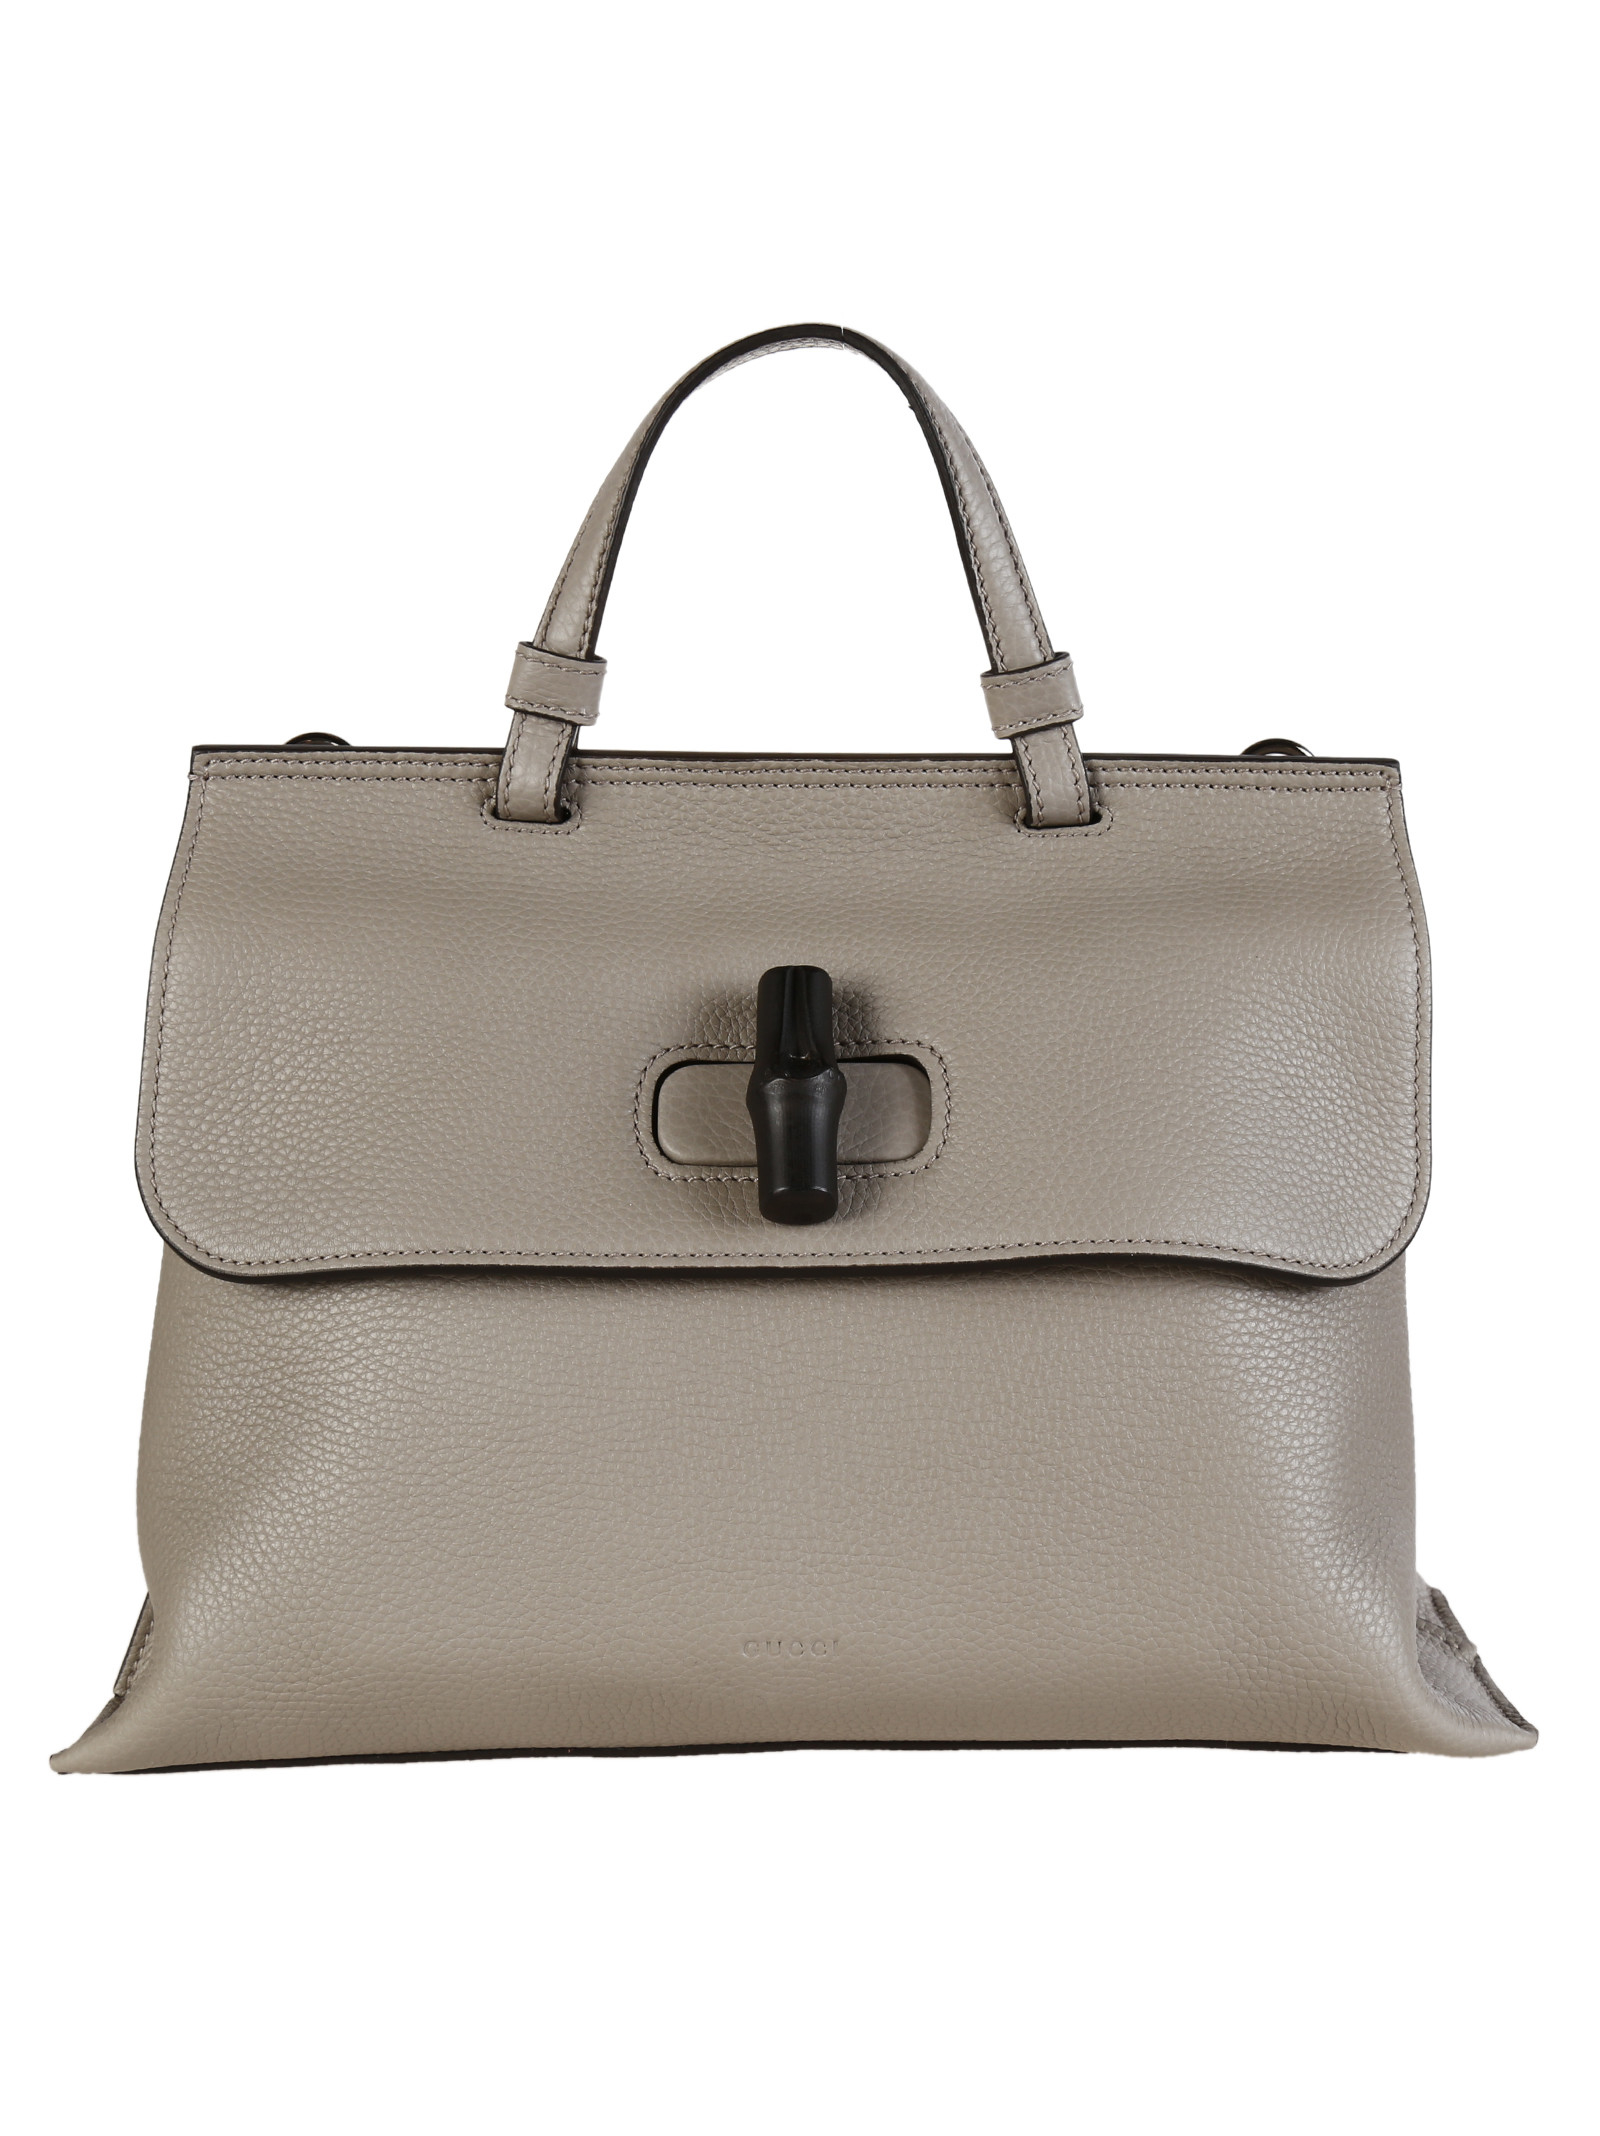 ec42e2304336 Gucci Cellarius Leather Bamboo Daily Top Handle Bag in Gray (Storm Gray) |  Lyst